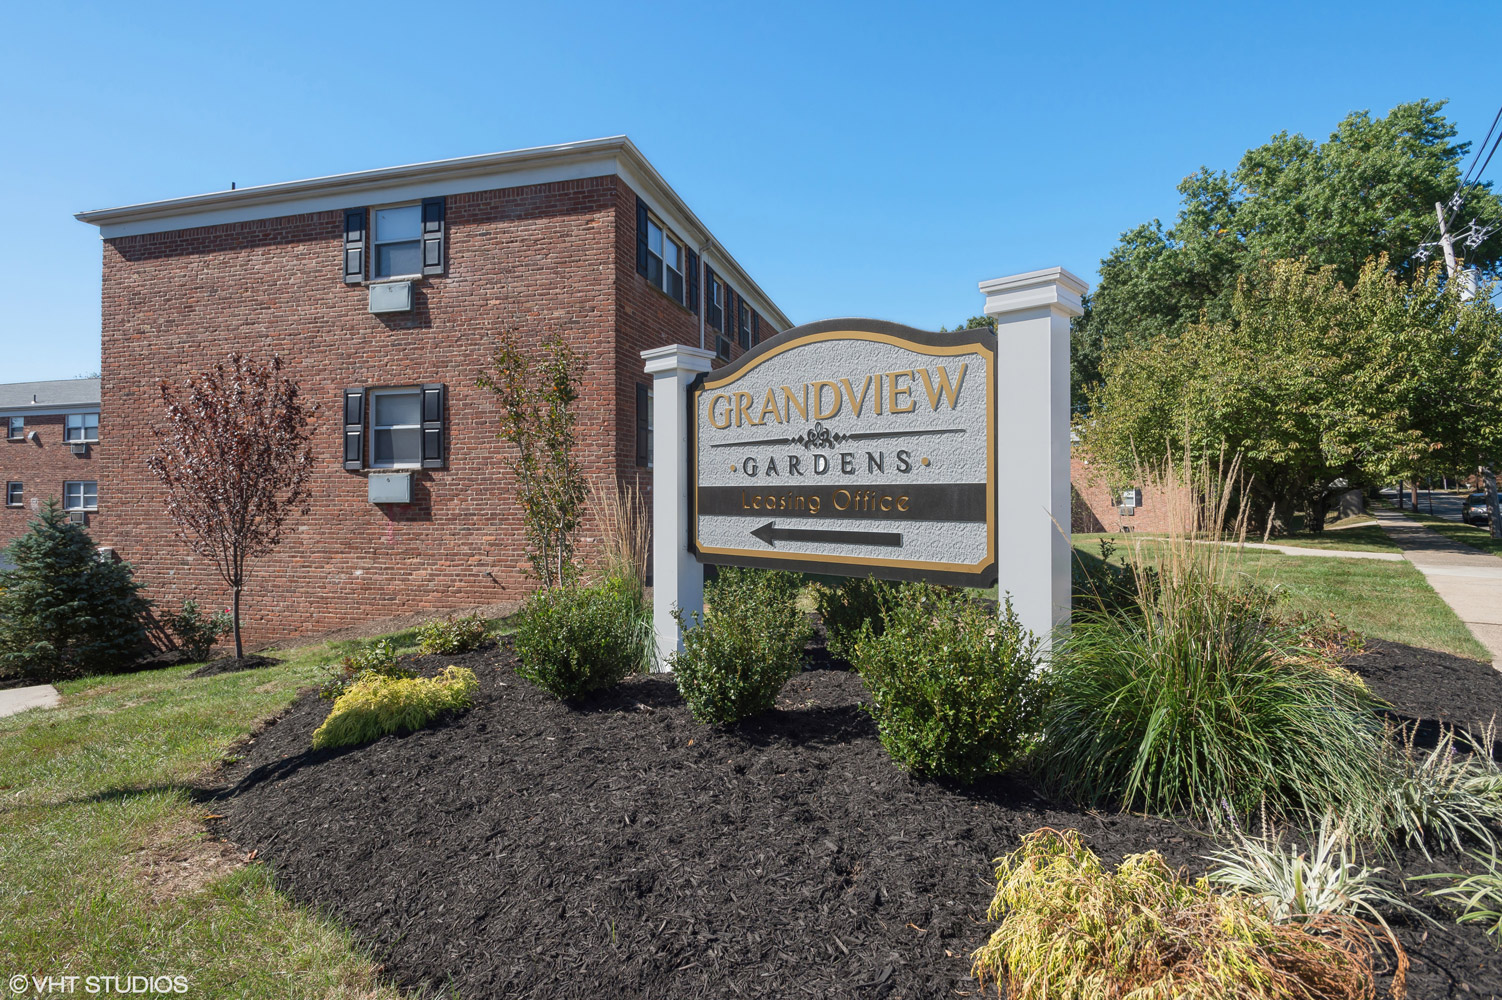 Signage at Grandview Gardens Apartments in Edison, New Jersey